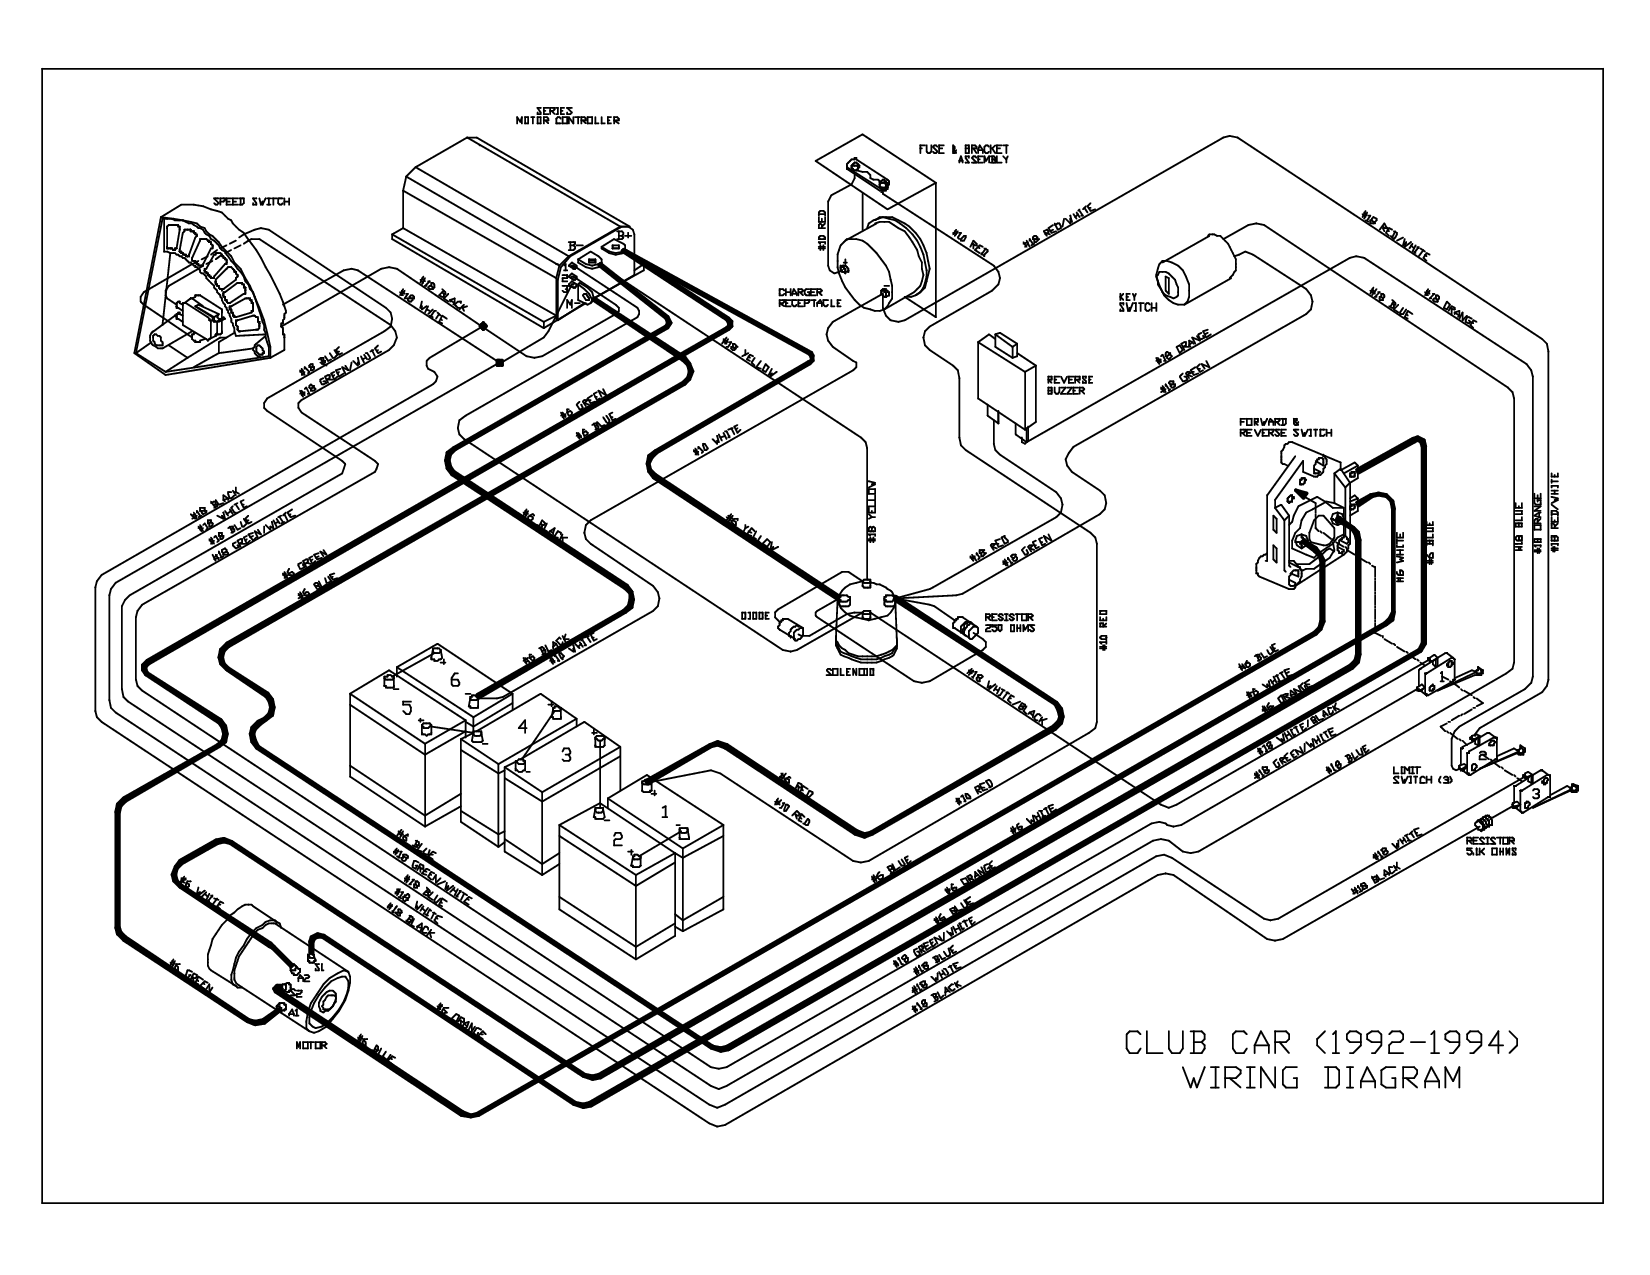 yamaha golf cart wiring diagram 54252ef 1994 yamaha golf cart wiring diagram wiring library yamaha golf buggy wiring diagram yamaha golf cart wiring diagram